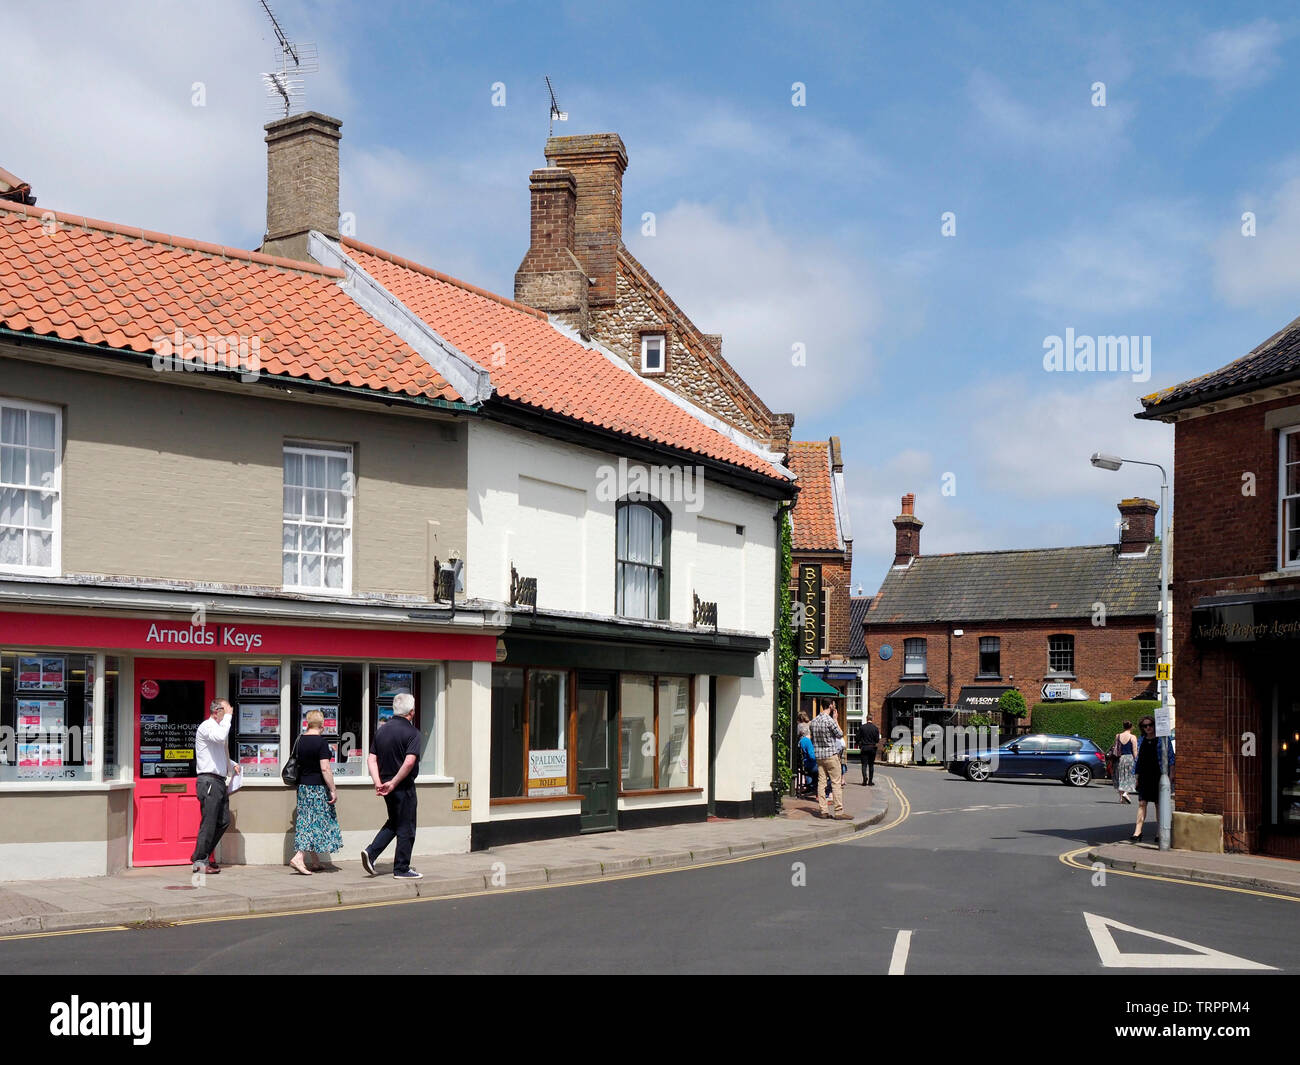 Looking into Byford Court from the High Street in the pretty North Norfolk market town of Holt with it's lovely Georgian buildings. Stock Photo